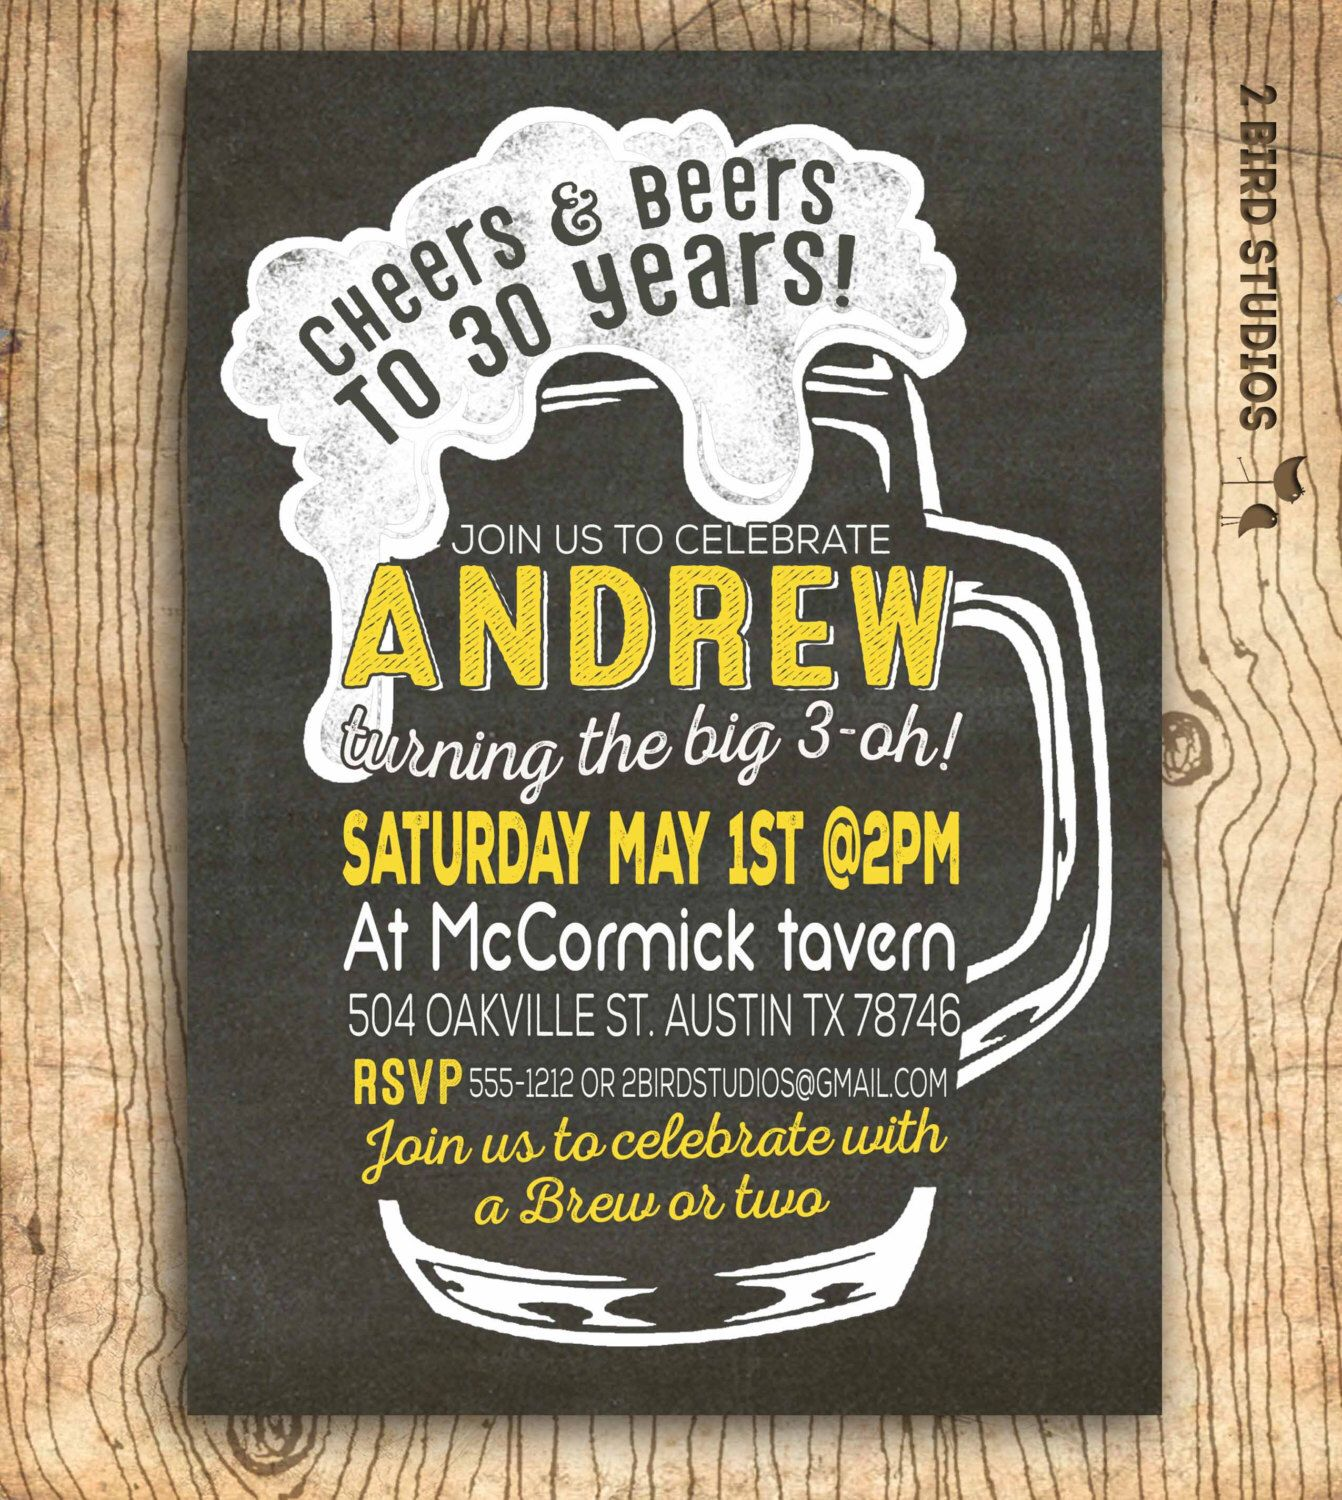 th birthday invitation cheers and beers to years invitation